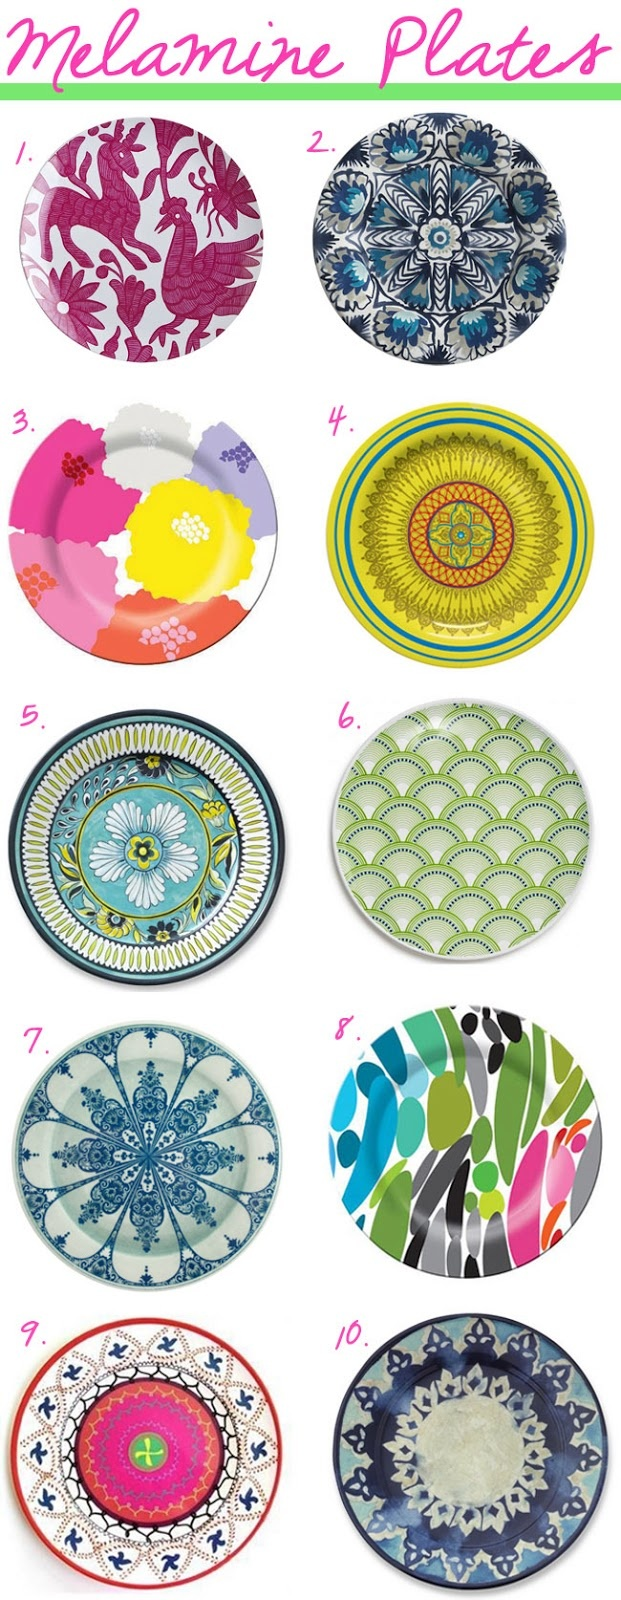 Baubles and Cocktails Our Top 10 Favorite Melamine Plates  sc 1 st  Pinterest & 100+ best Pretty Dining Plates images by Daria Anderson on Pinterest ...